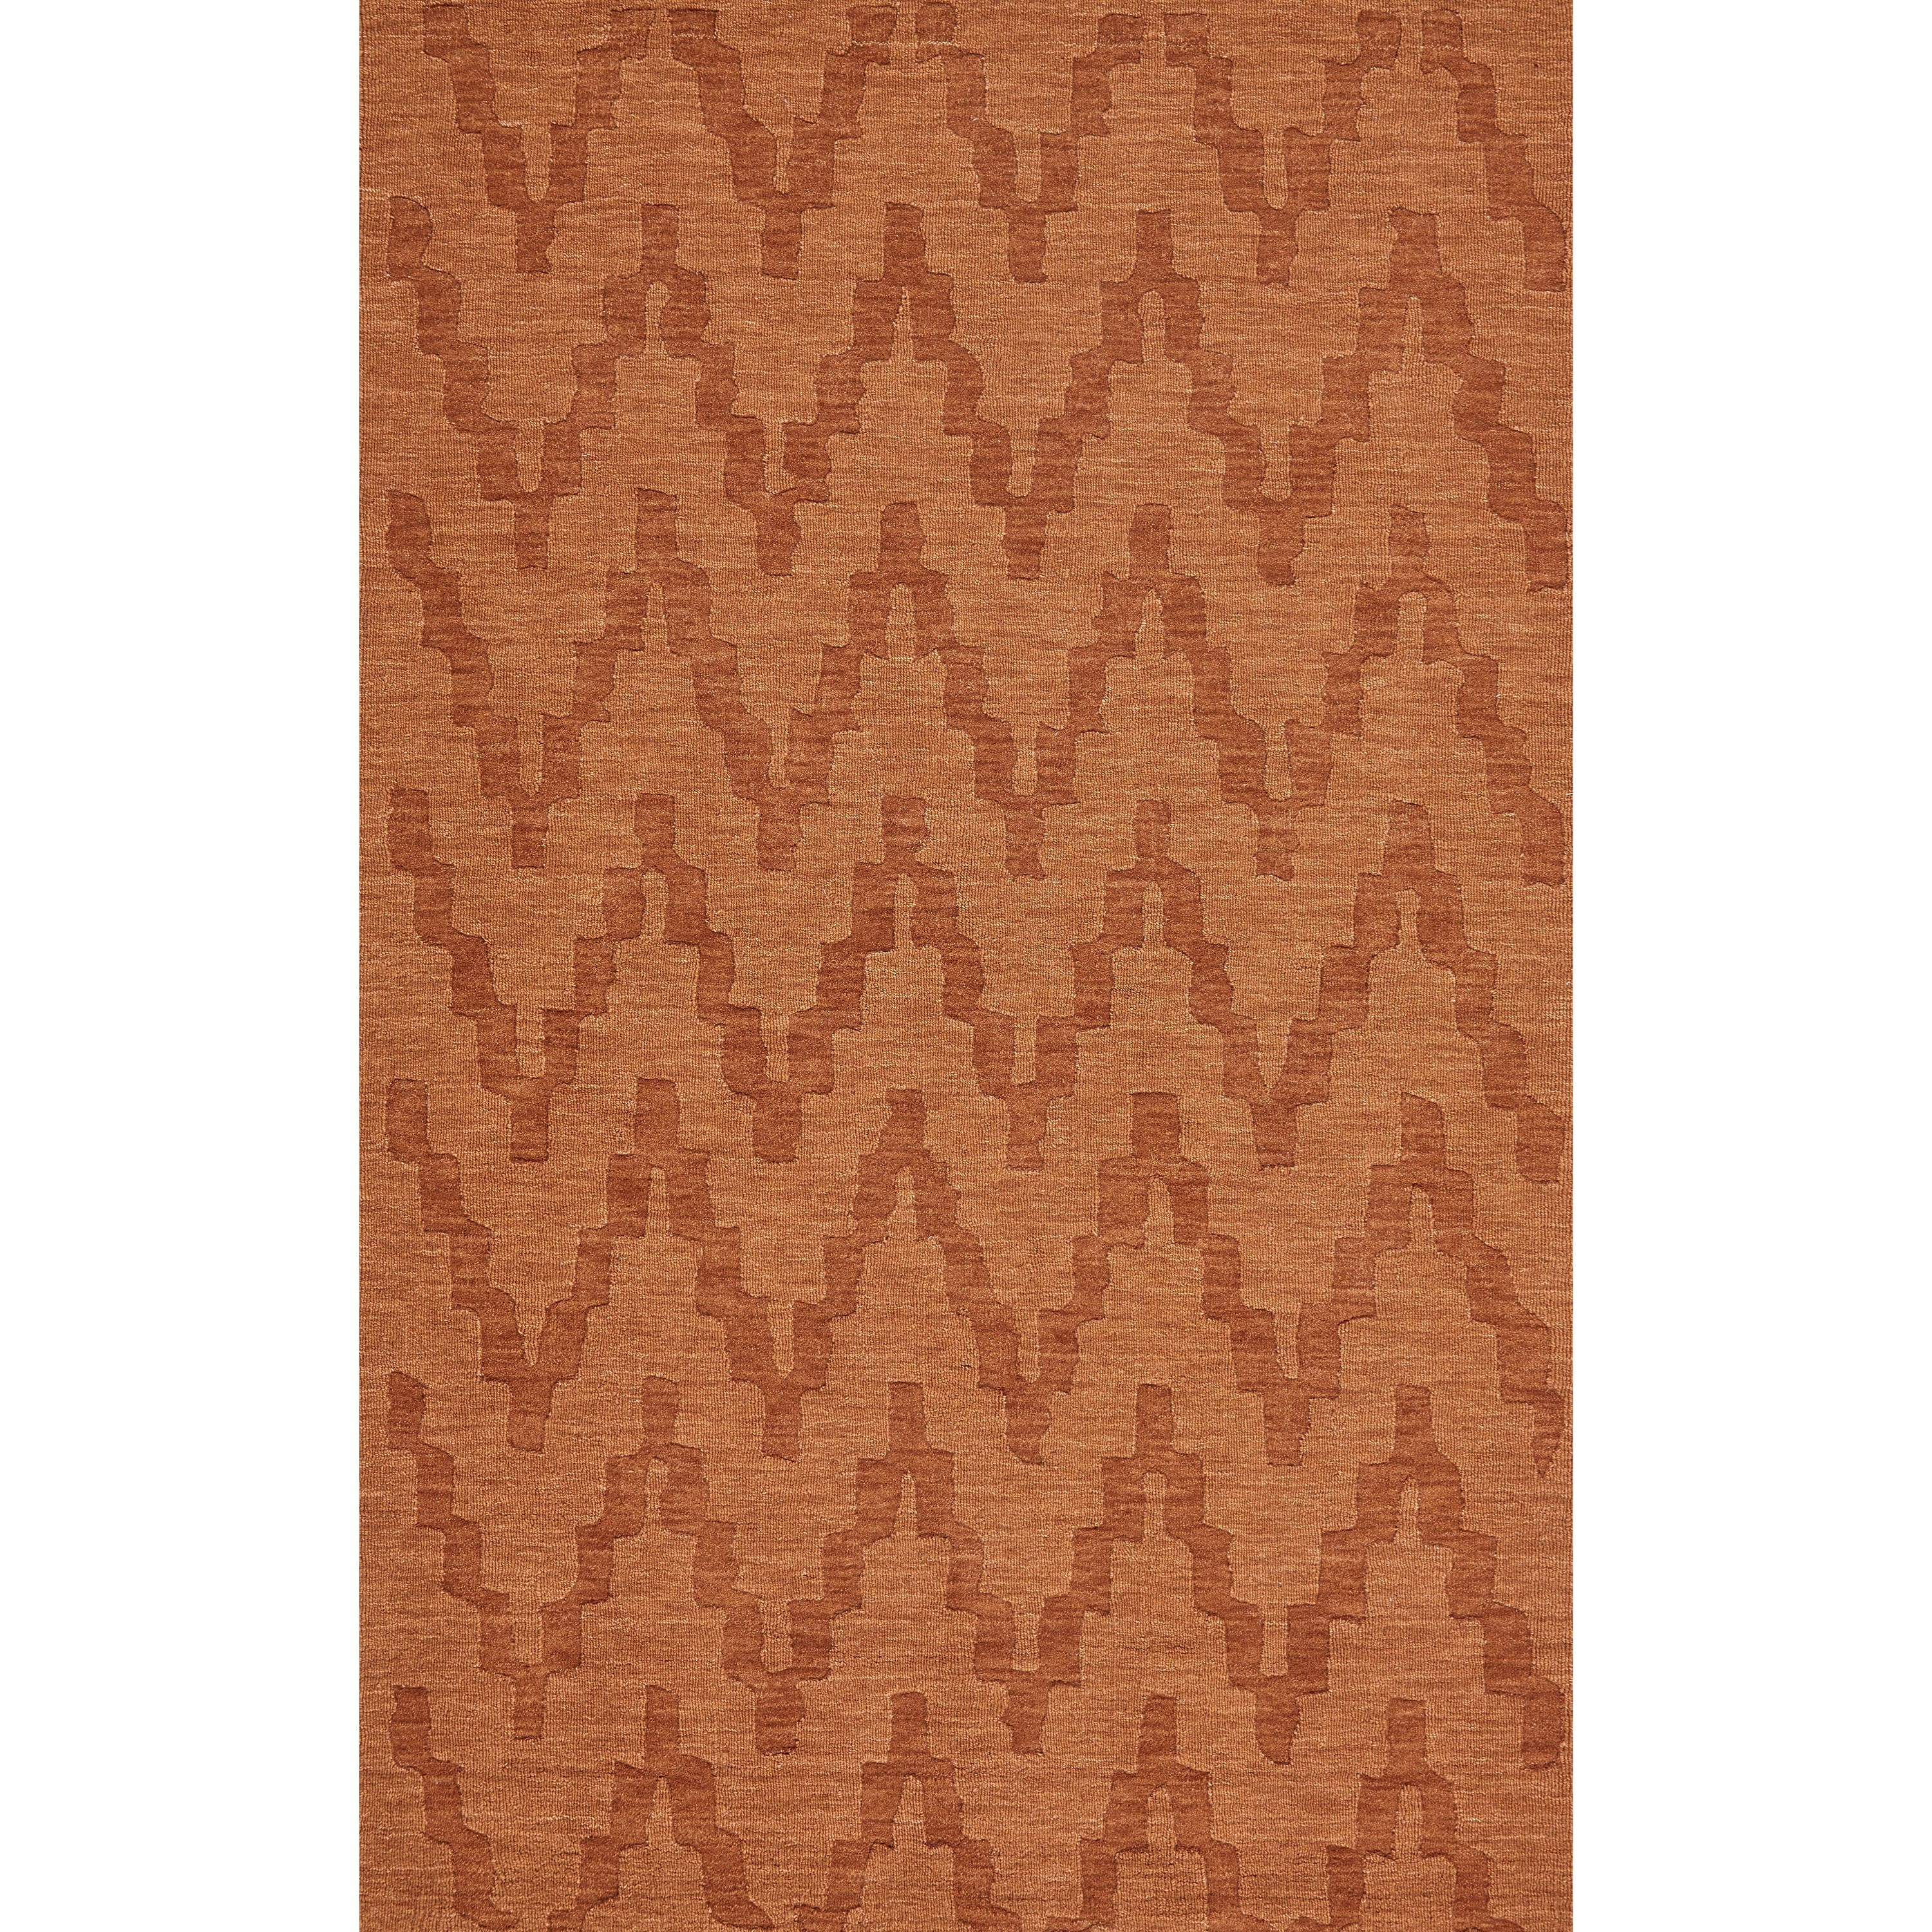 Soma Orange 5' x 8' Area Rug by Feizy Rugs at Sprintz Furniture